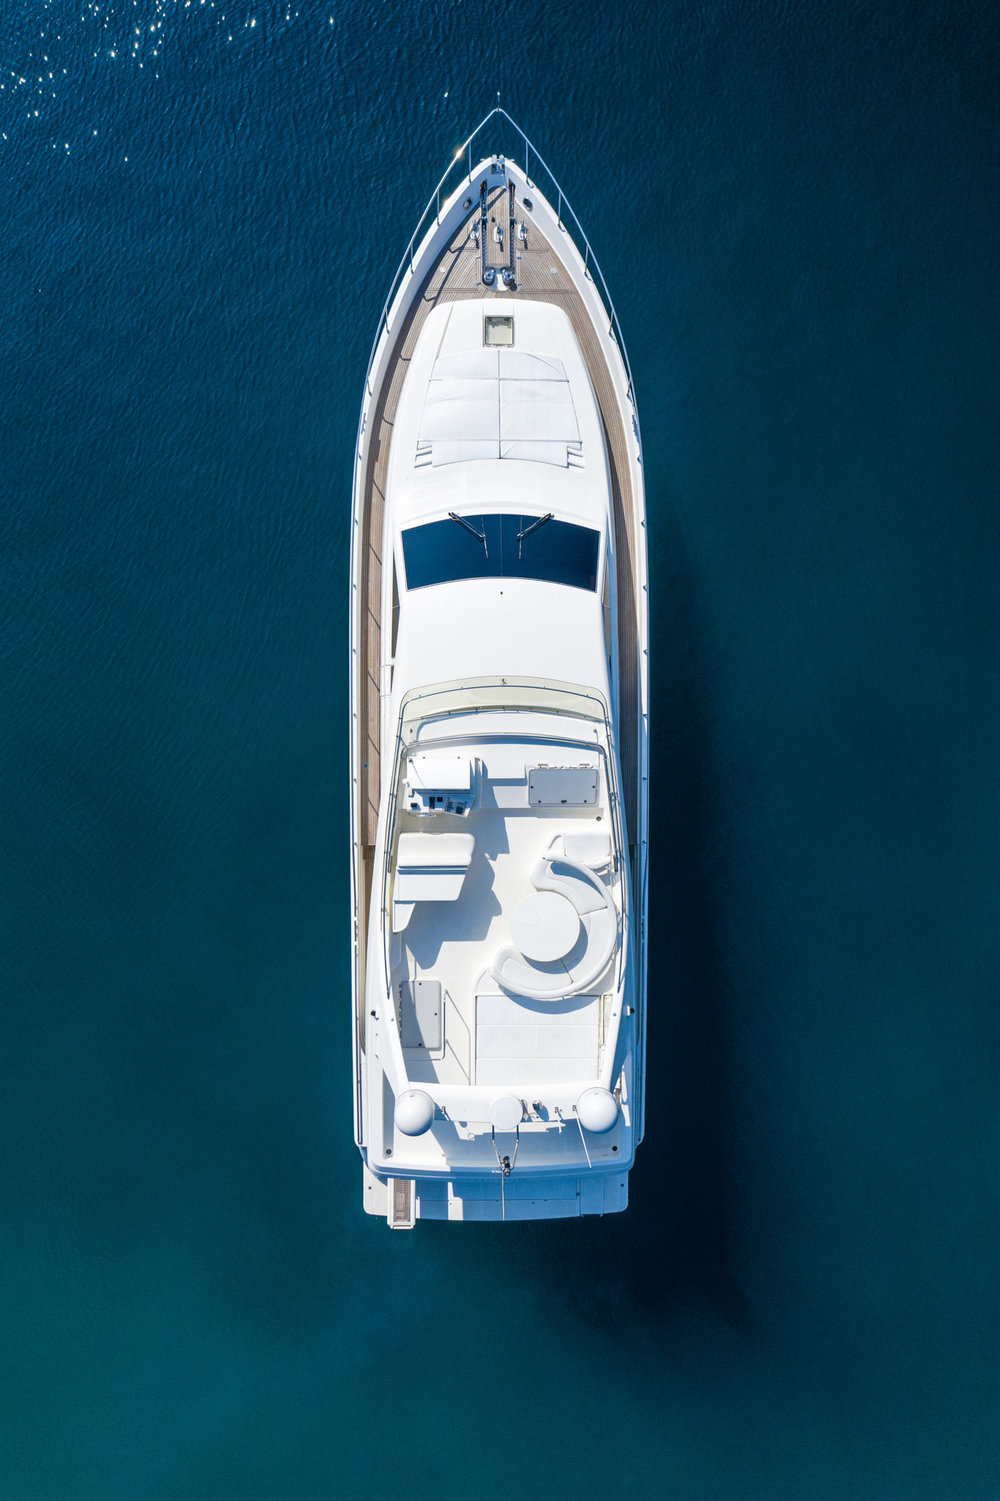 ferretti 68 from top.jpg